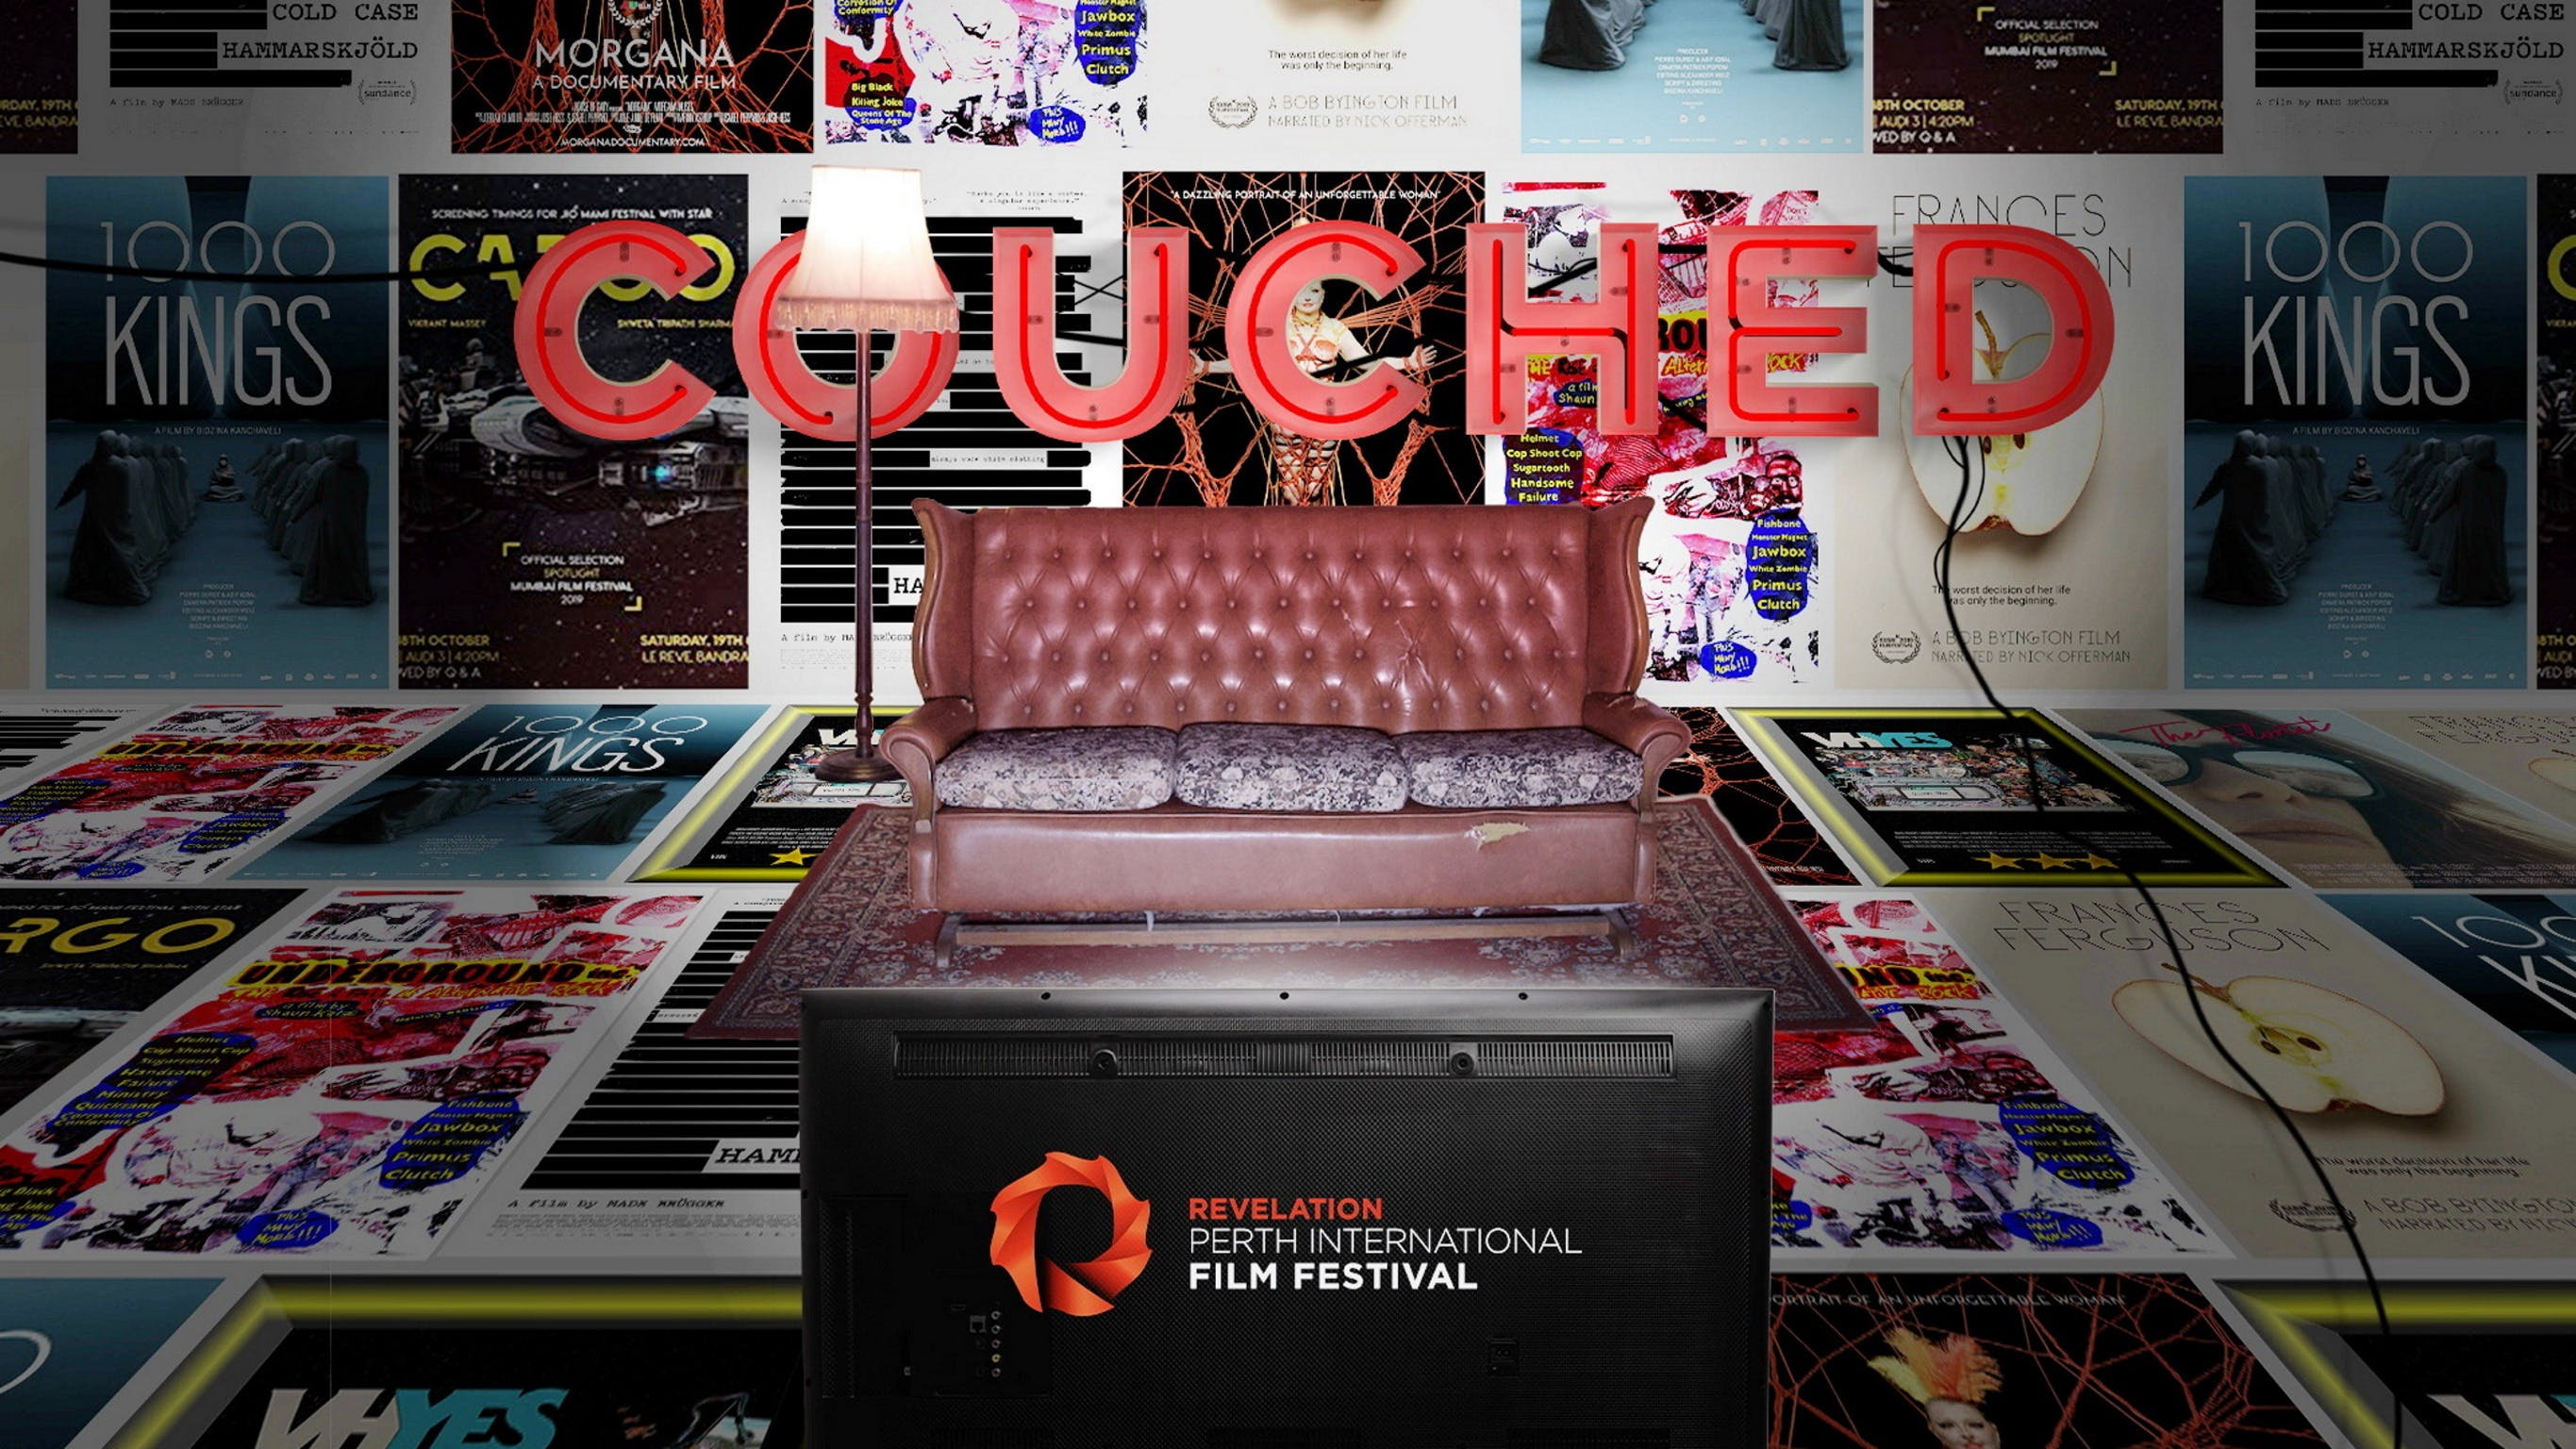 COUCHED - Revelation Perth International Film Festival - Broome Tourism